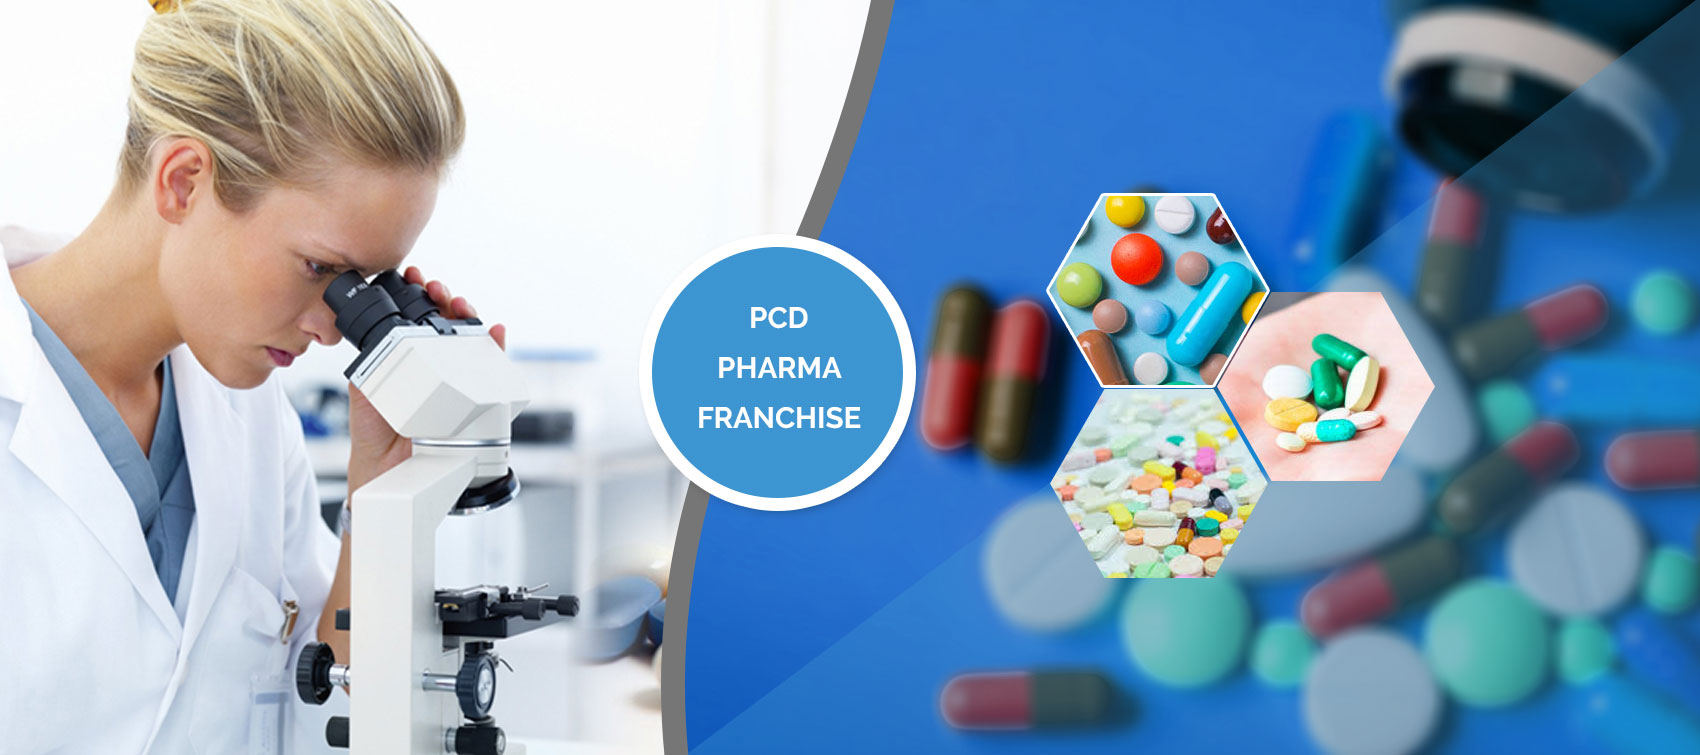 Monopoly Pharma Franchise Companies in India New Delhi